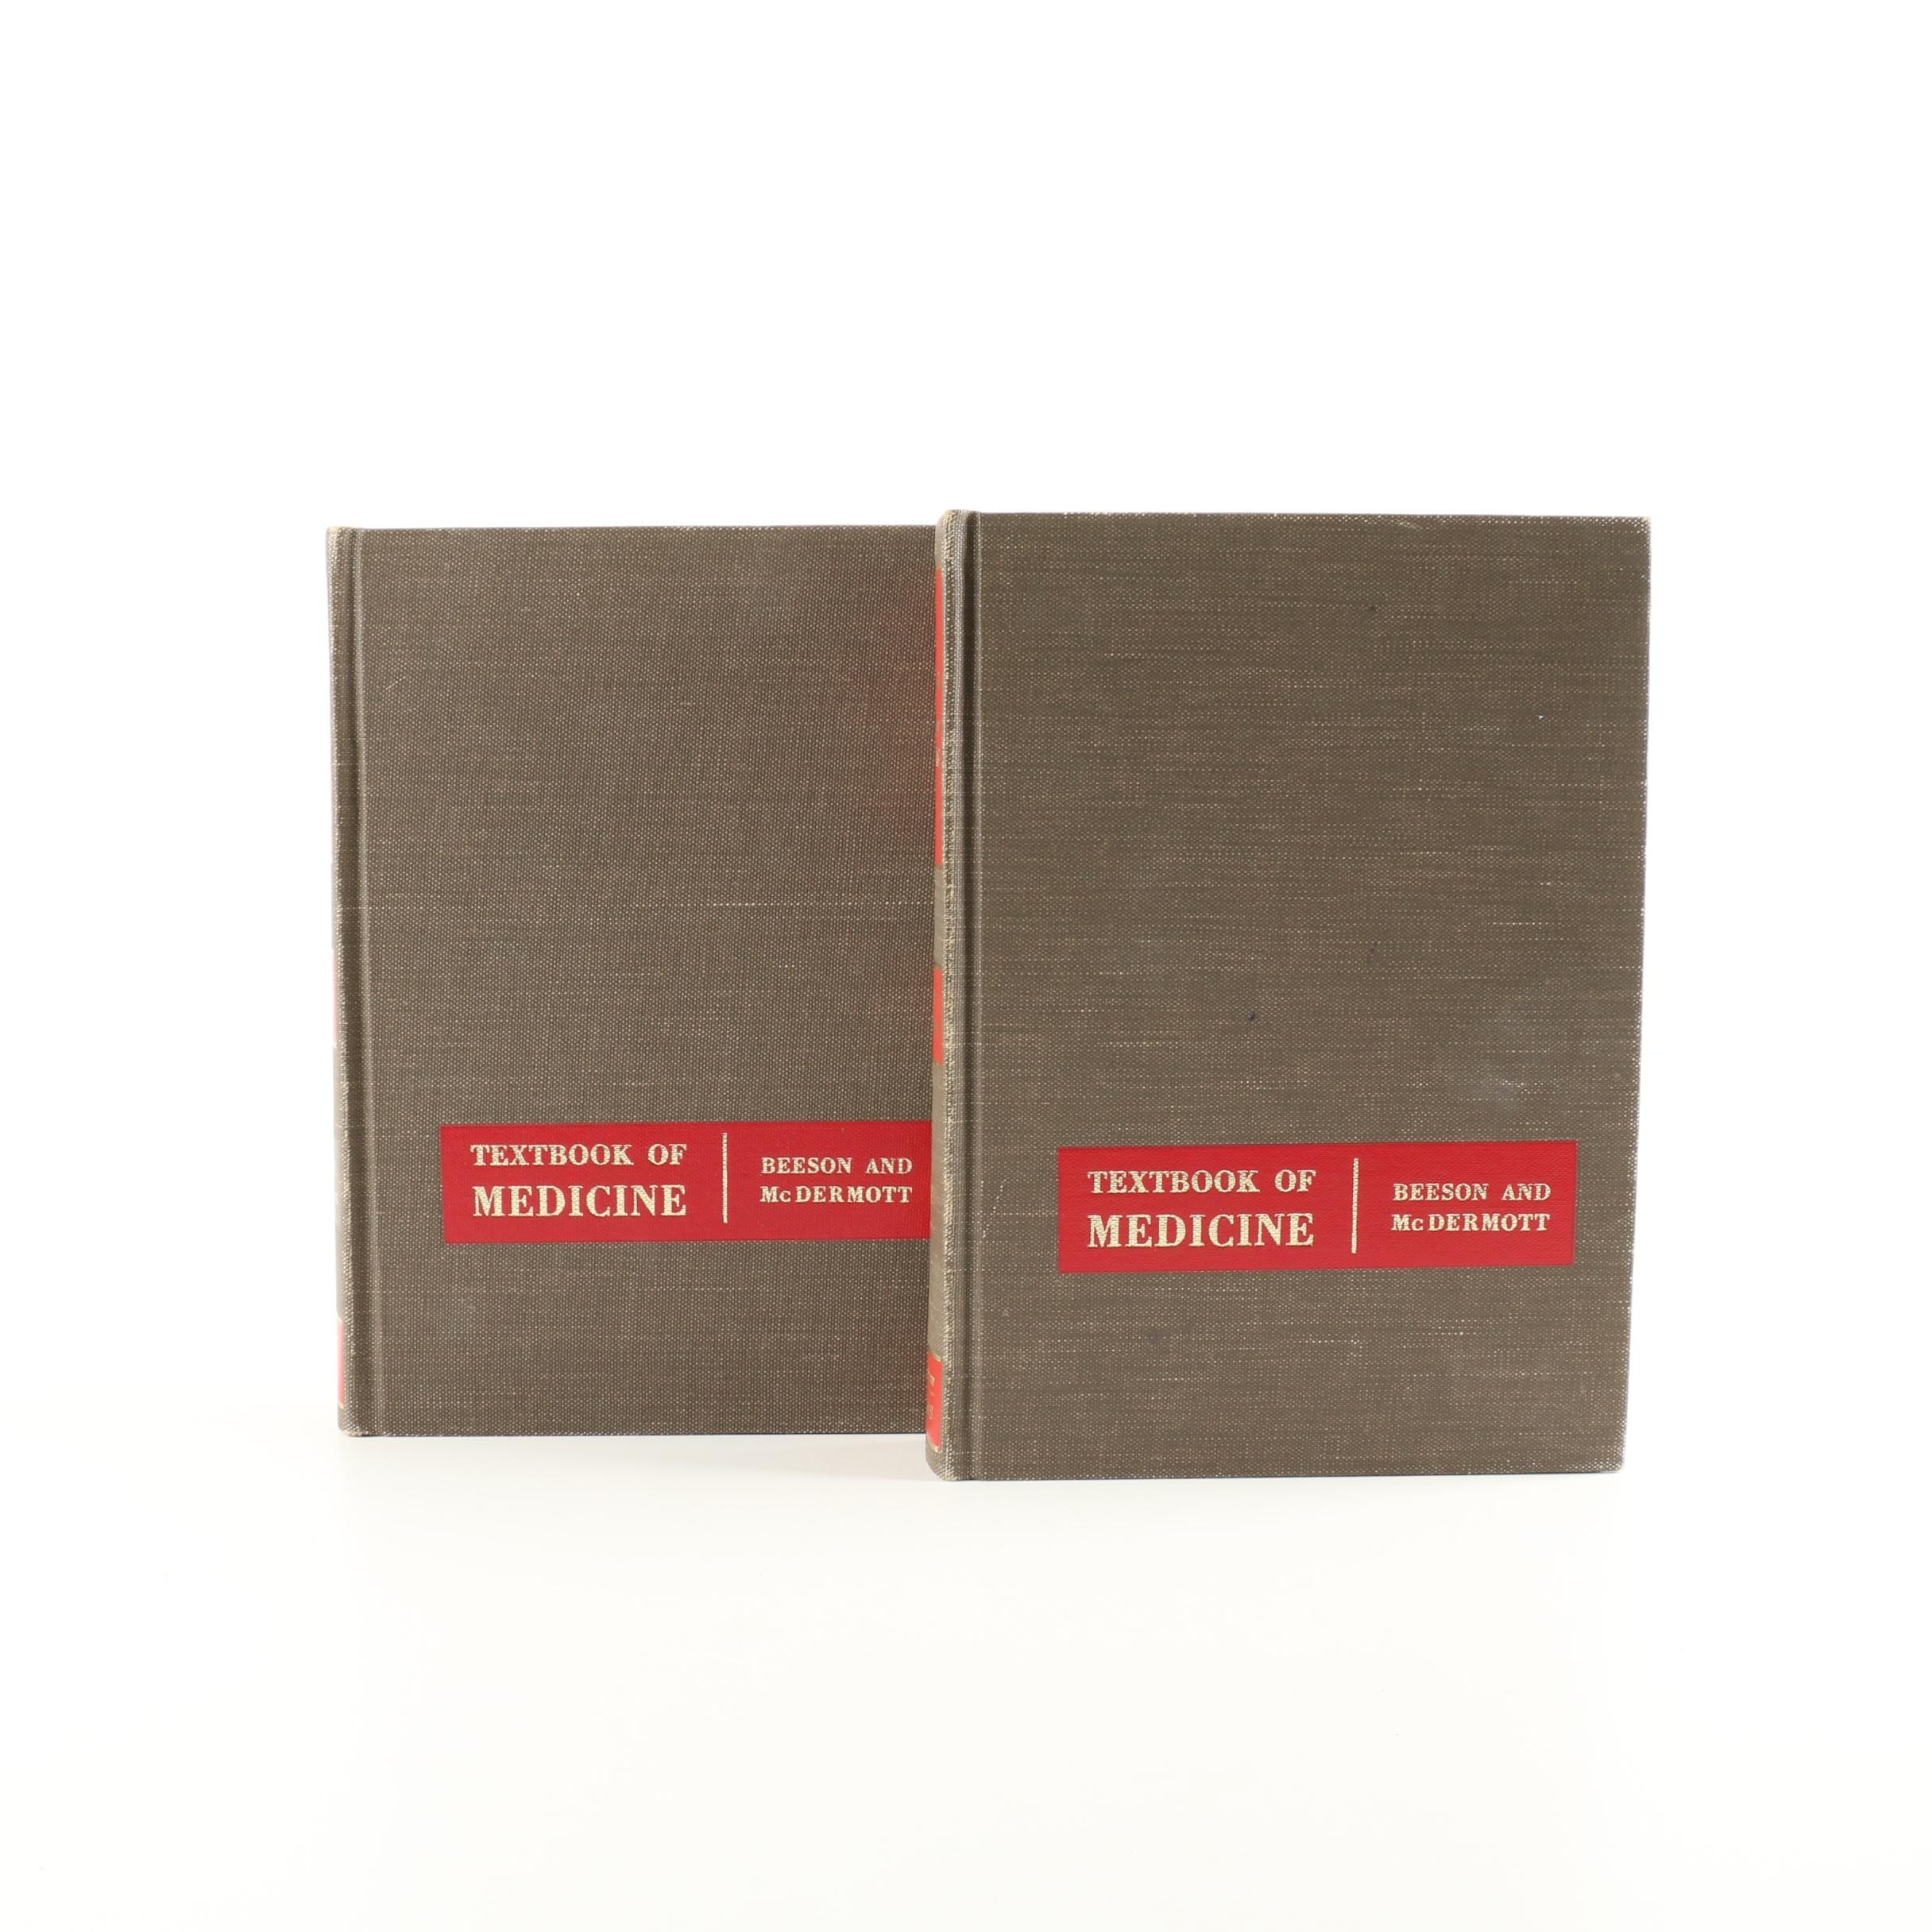 """1963 """"Cecil-Loeb Textbook of Medicine"""" by Beeson & McDermott Volumes I & II"""